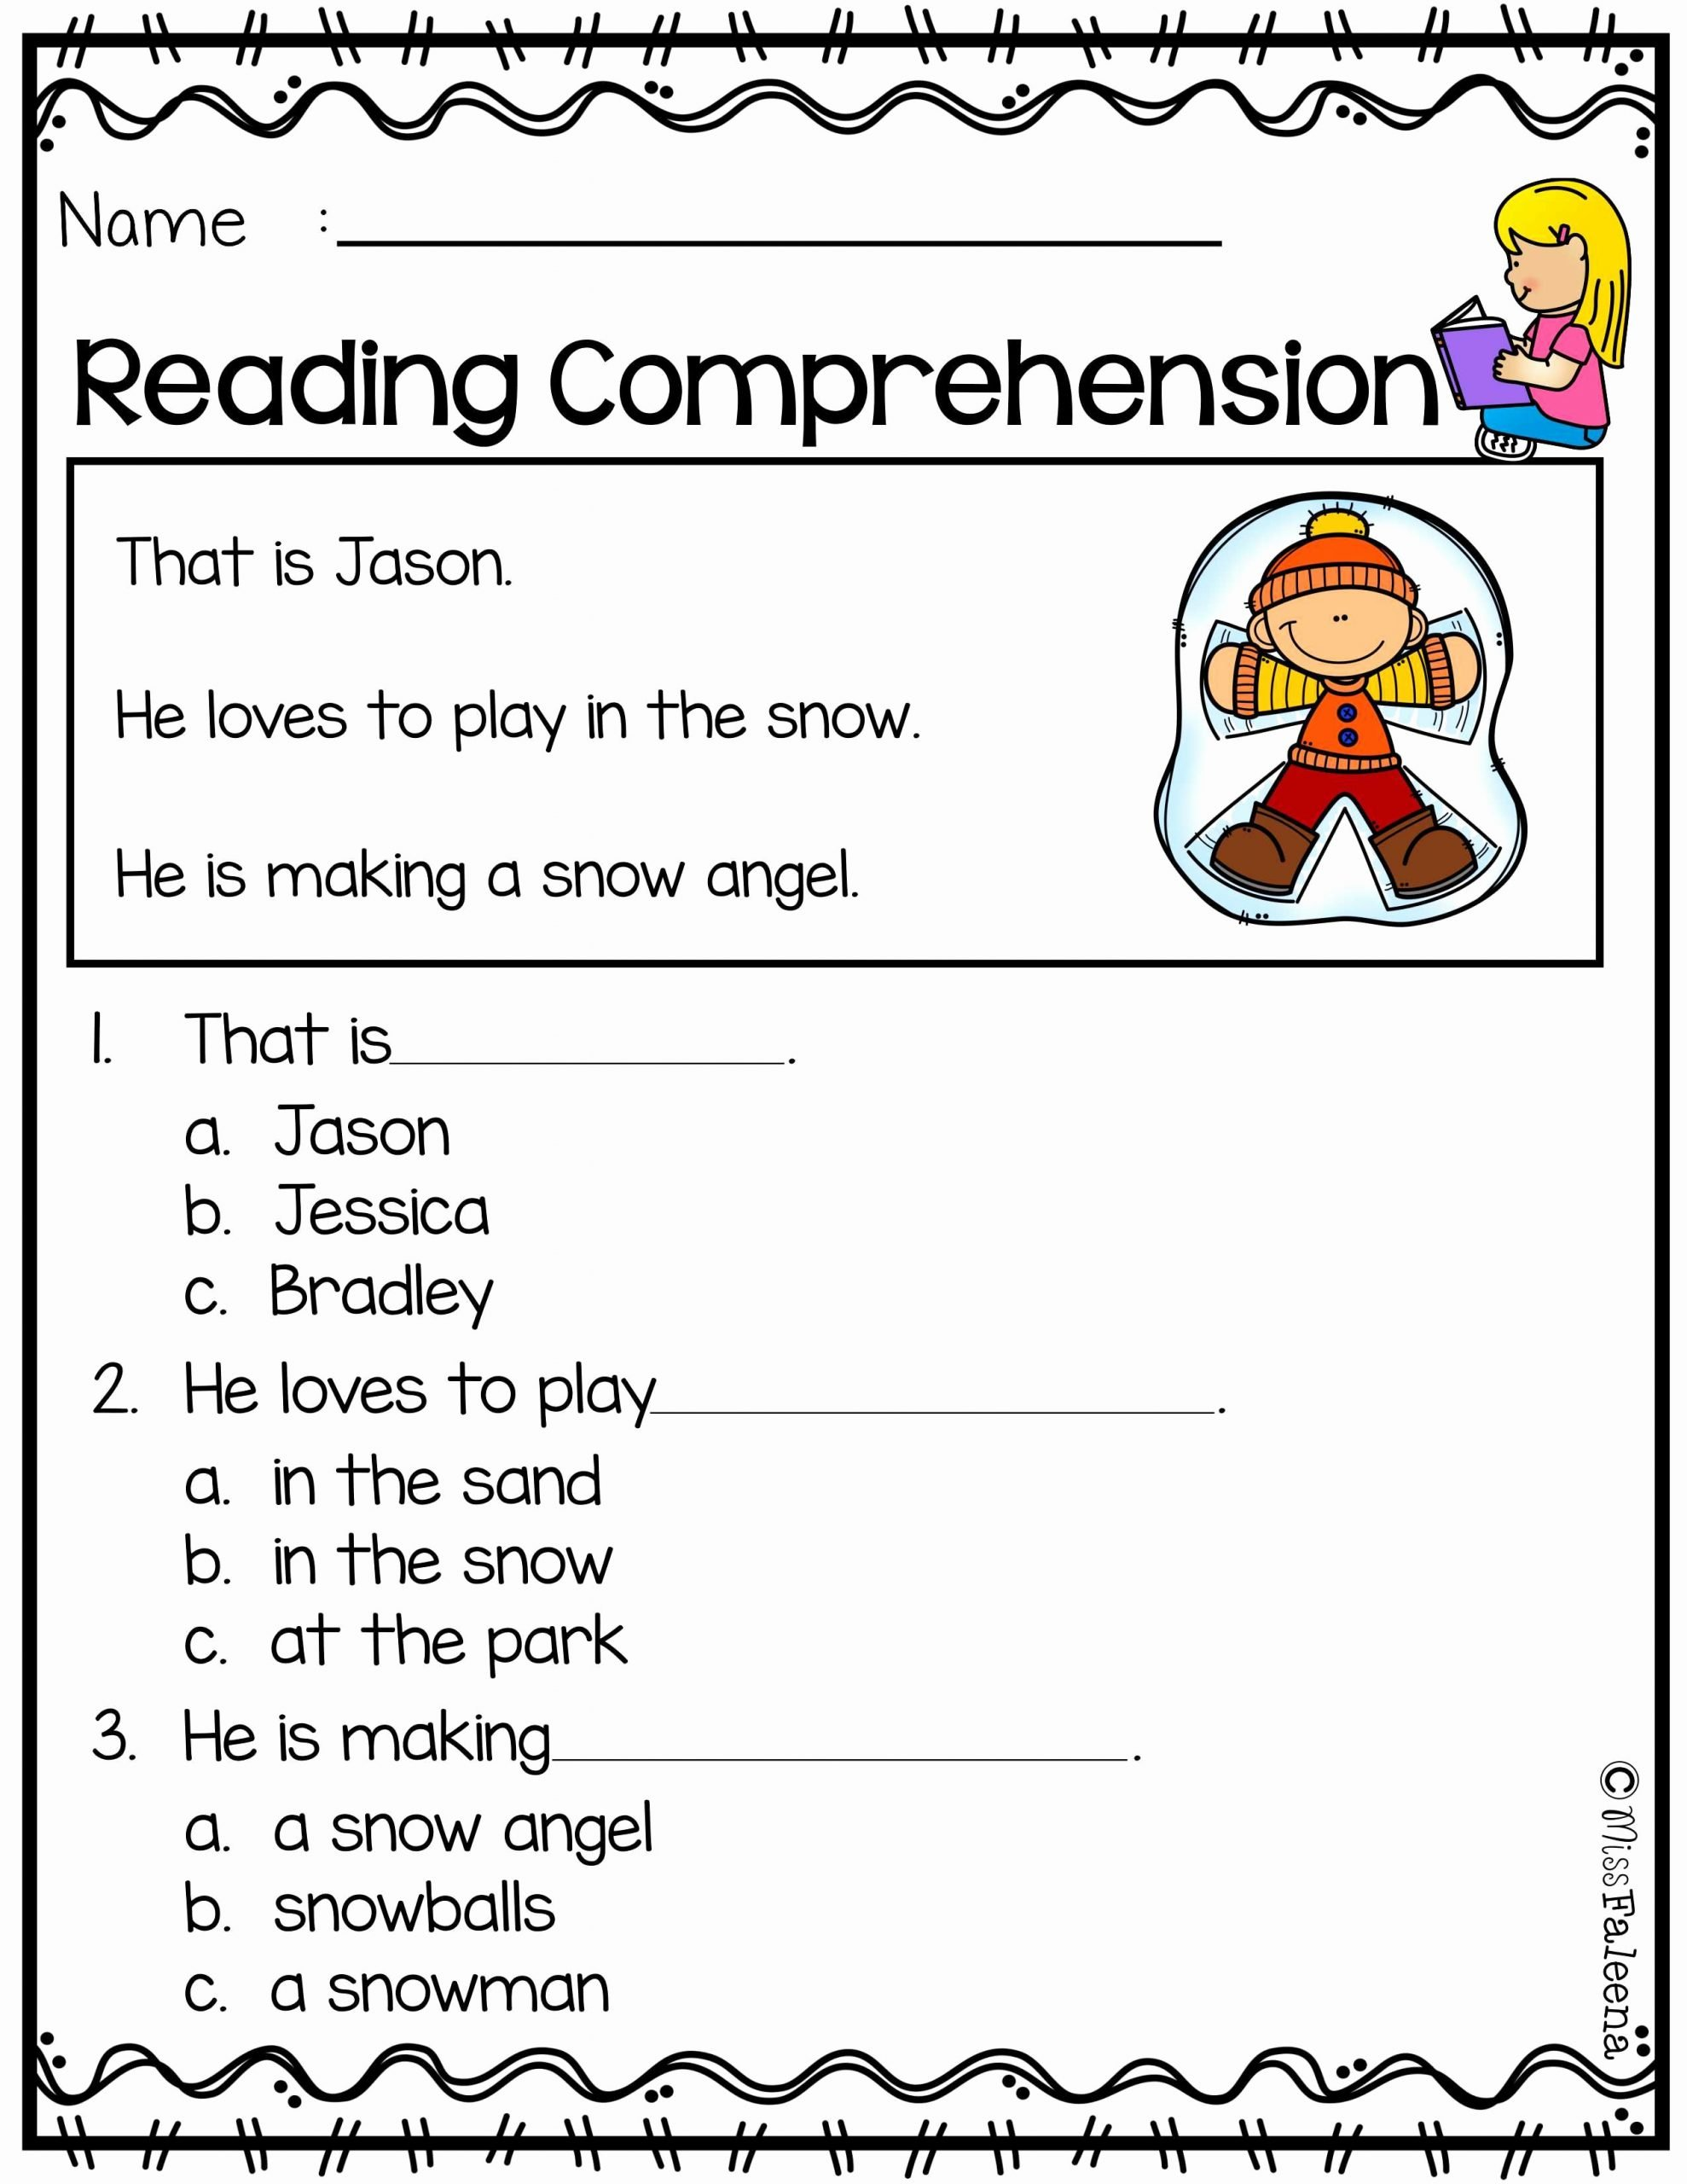 Comprehension Worksheets for Preschoolers Fresh Free Reading Prehension